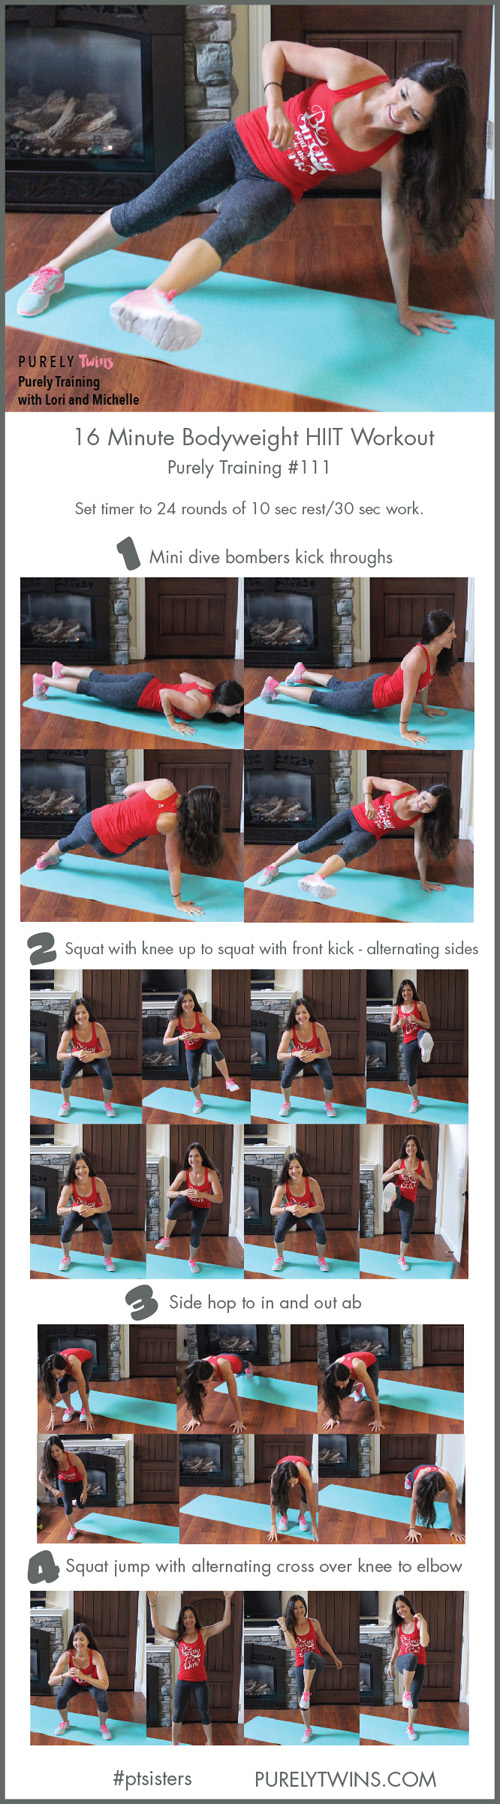 One of the most issues we hear is majority of women can't seem to find the time to fit a workout in? We have the PERFECT solution for you. 16 minute bodyweight HIIT home workout for the busy ladies looking to tone their full body. Looking for a fun uplifting working out to make you feel unstoppable? CLICK to get the follow along video You'll feel more inspired, motivated and focused. Are you in?